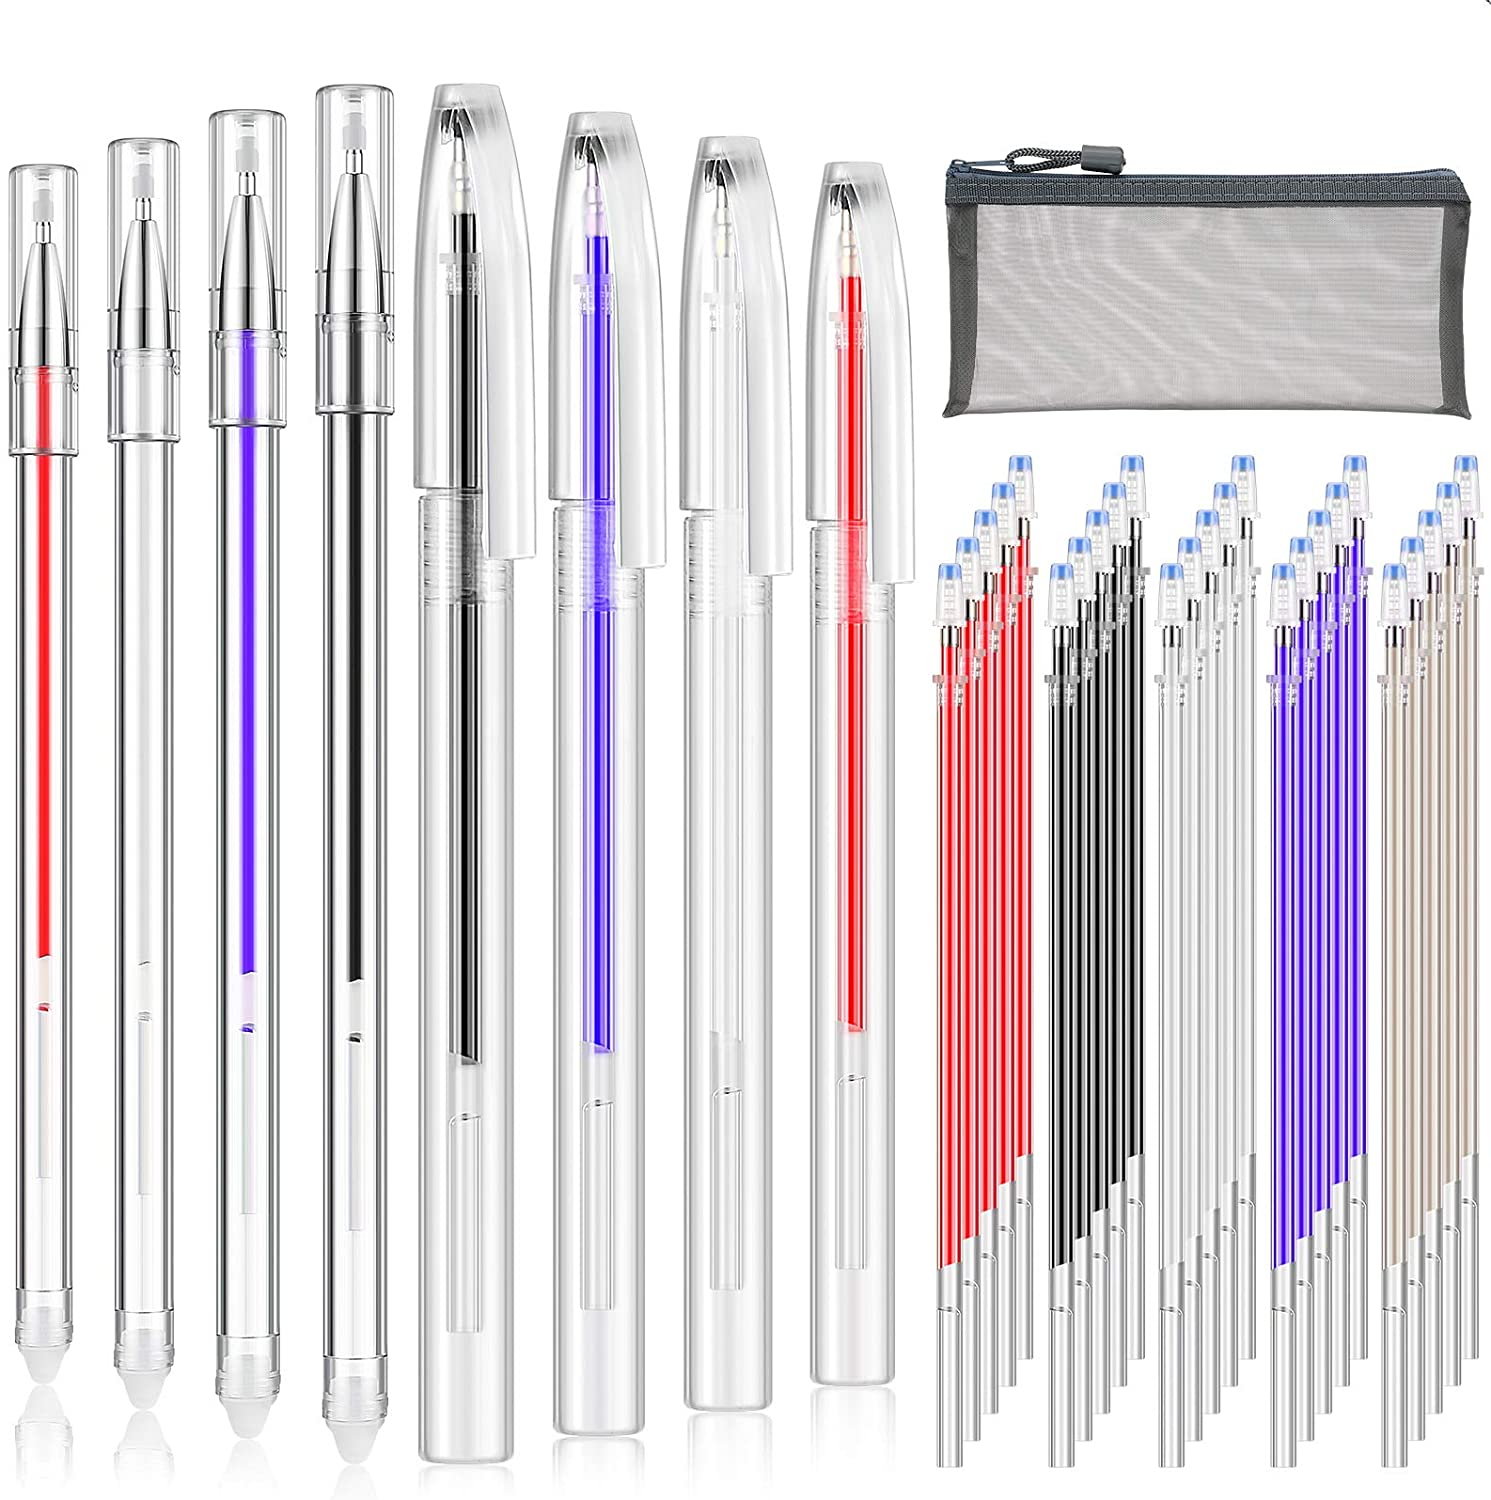 36 Pieces Heat Erasable Pens Set Includes 10 Pieces Heat Erasable Fabric Marking Pens Heat Erase Pens with 25 Pieces Refills and Pen Storage Bag for Quilting Sewing and Dressmaking : Office Products